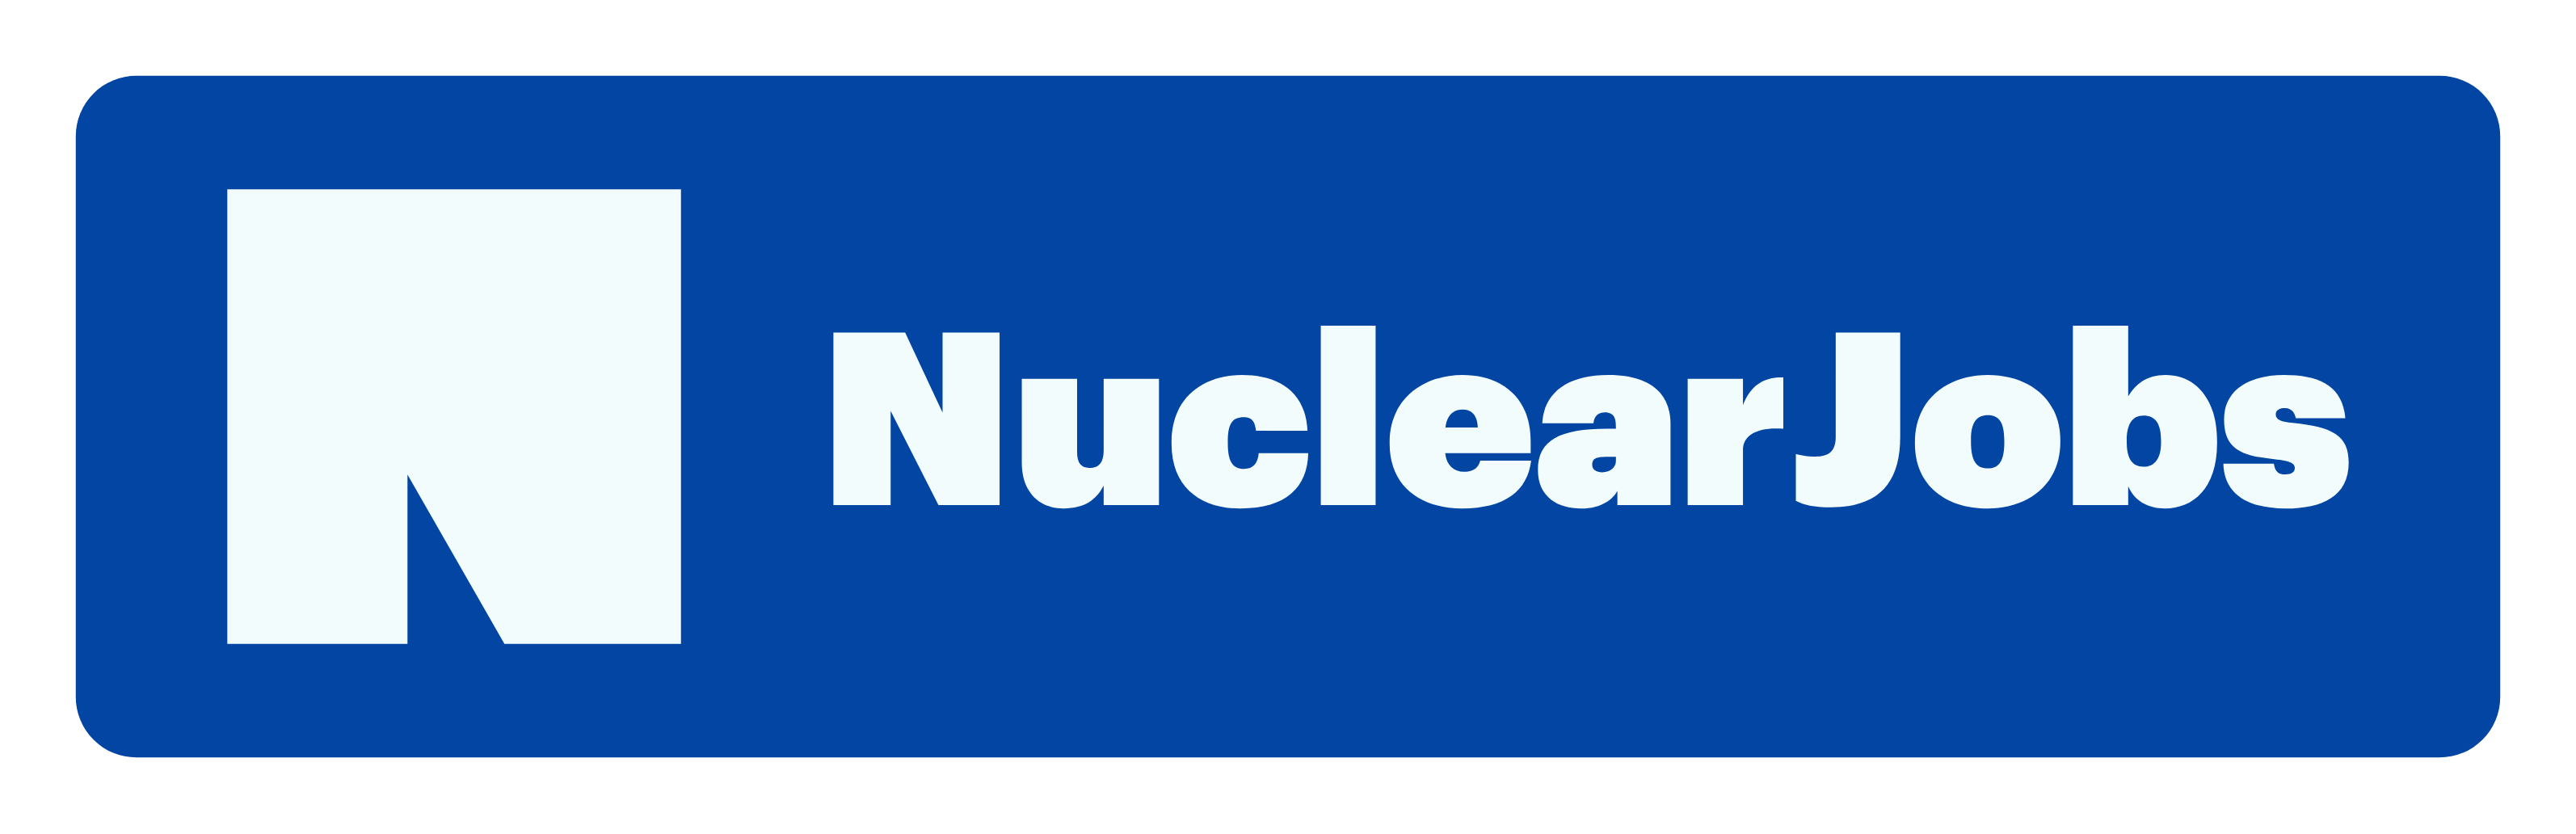 The logo of nuclearjobs.co.uk